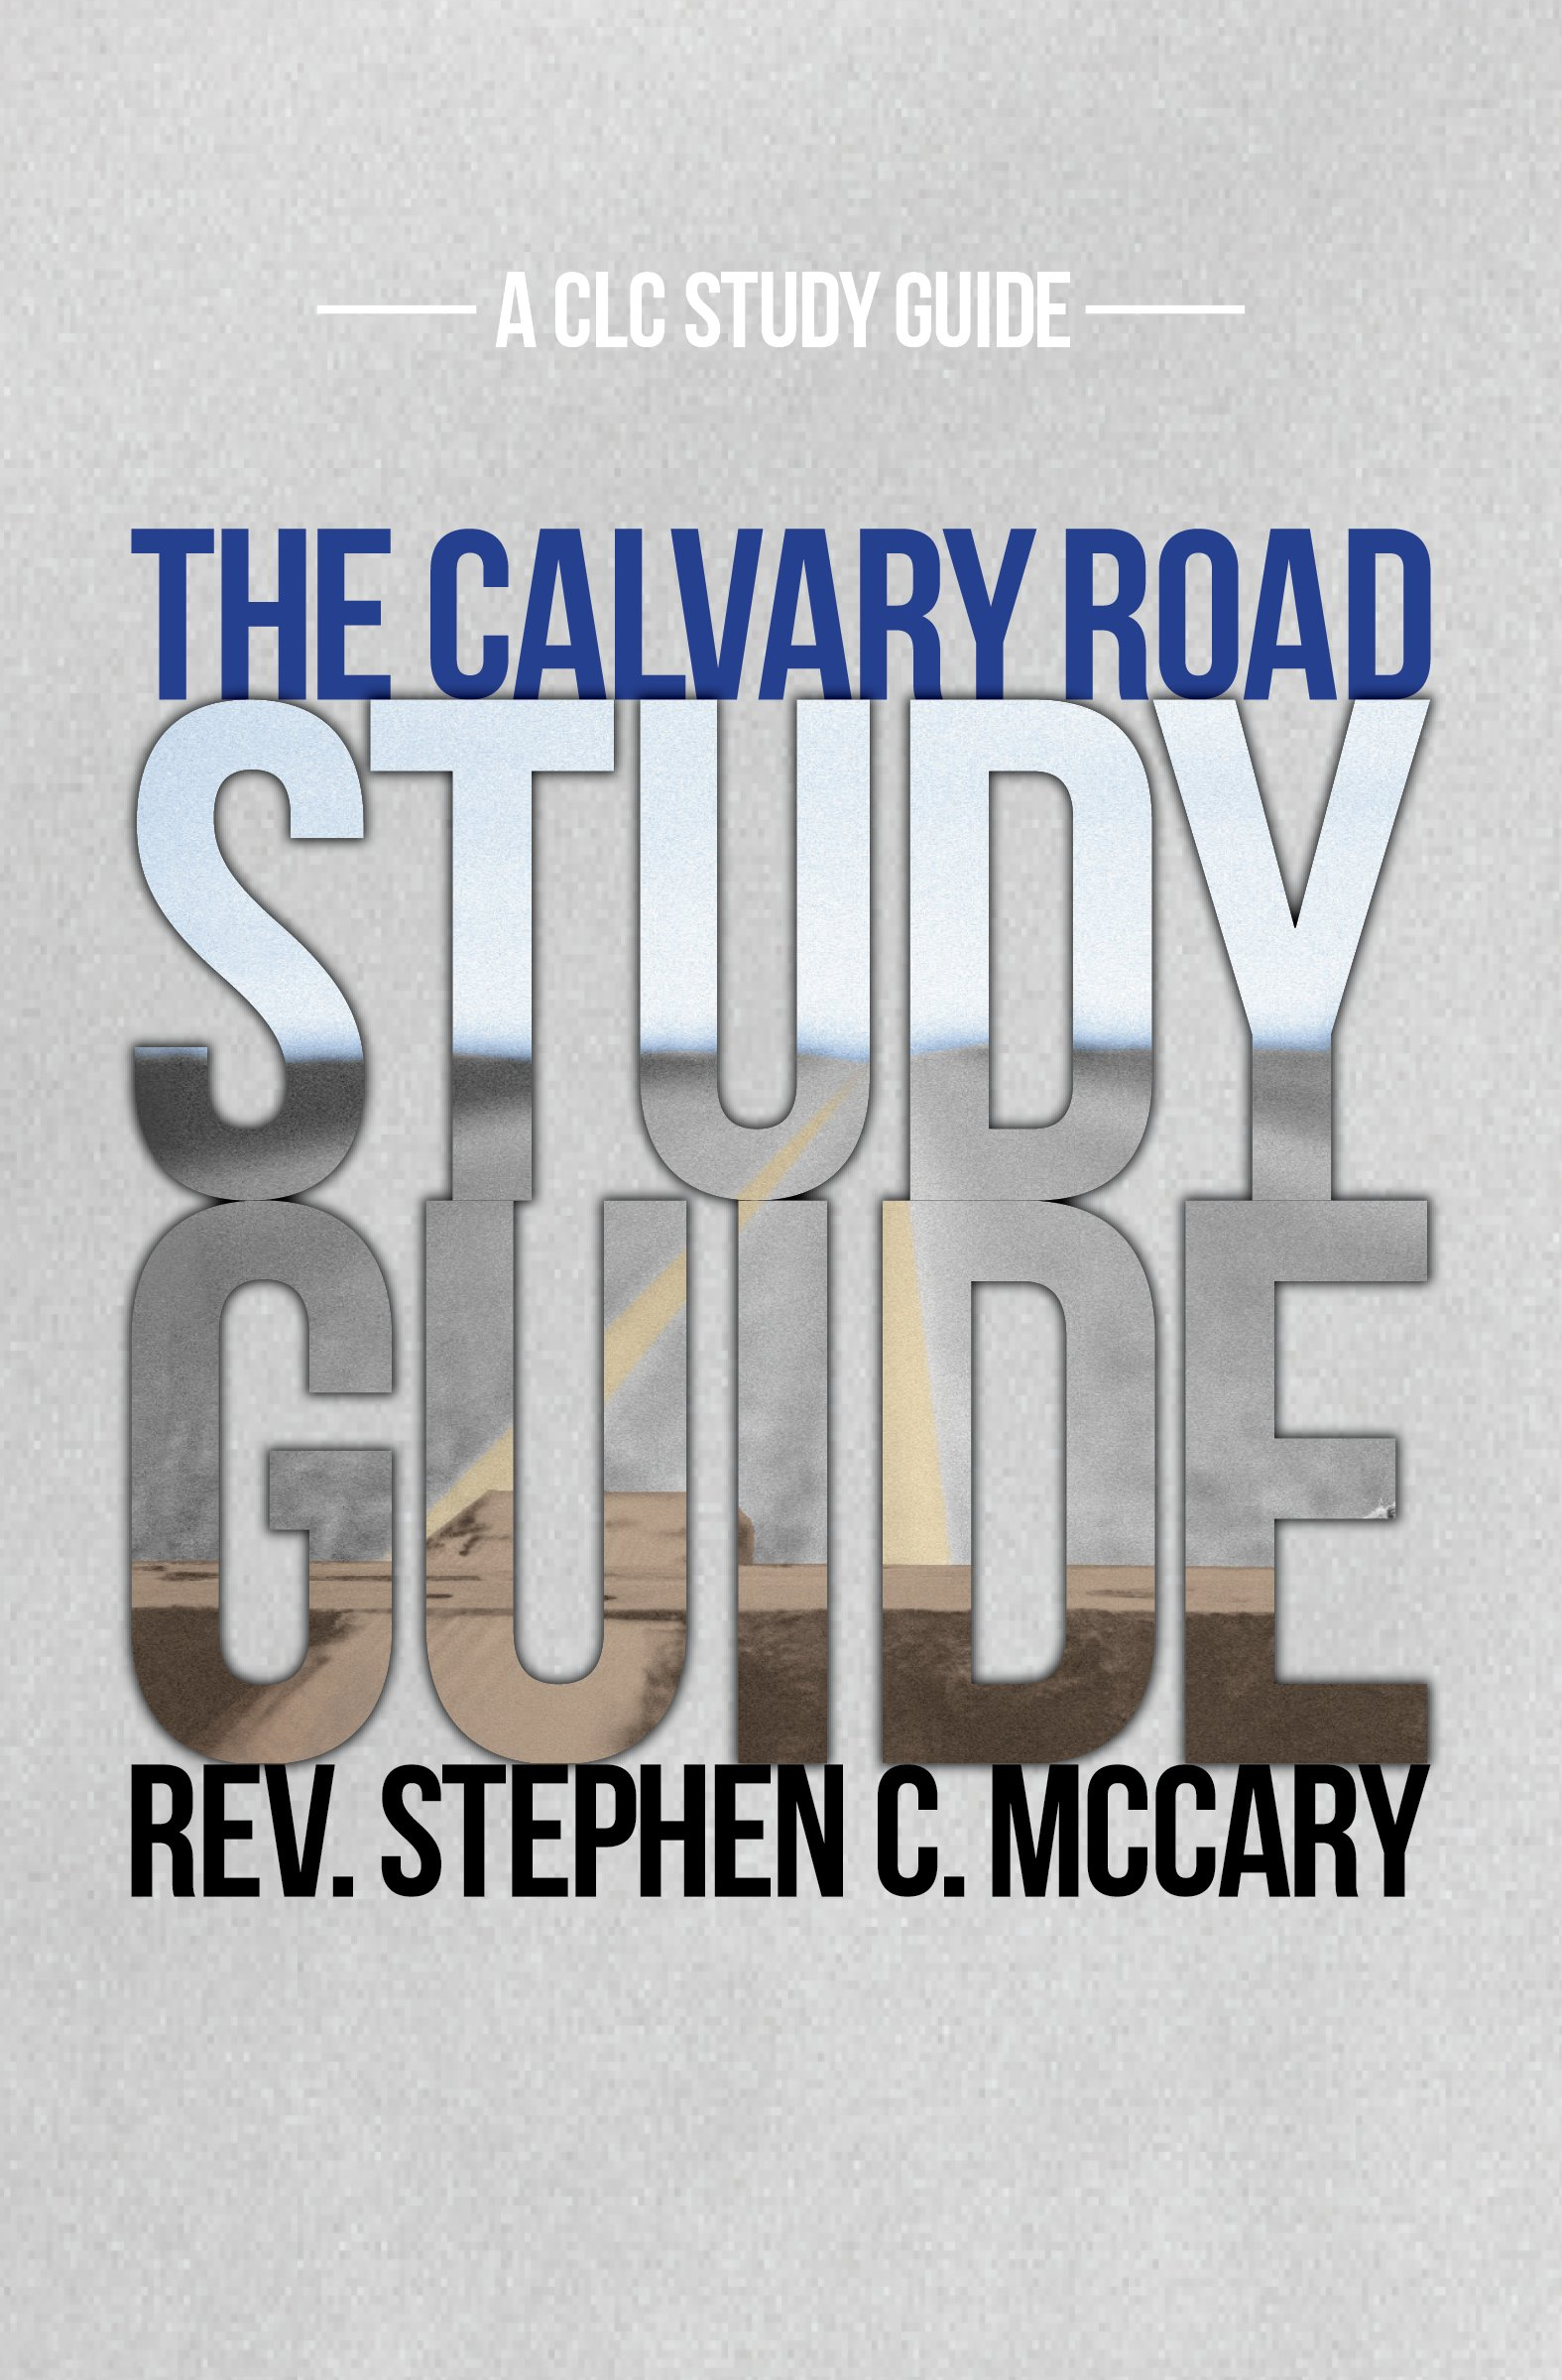 the calvary road study guide stephen mccary 9781619582743 amazon rh amazon com calvary road study guide pdf Calvary Road Christian School